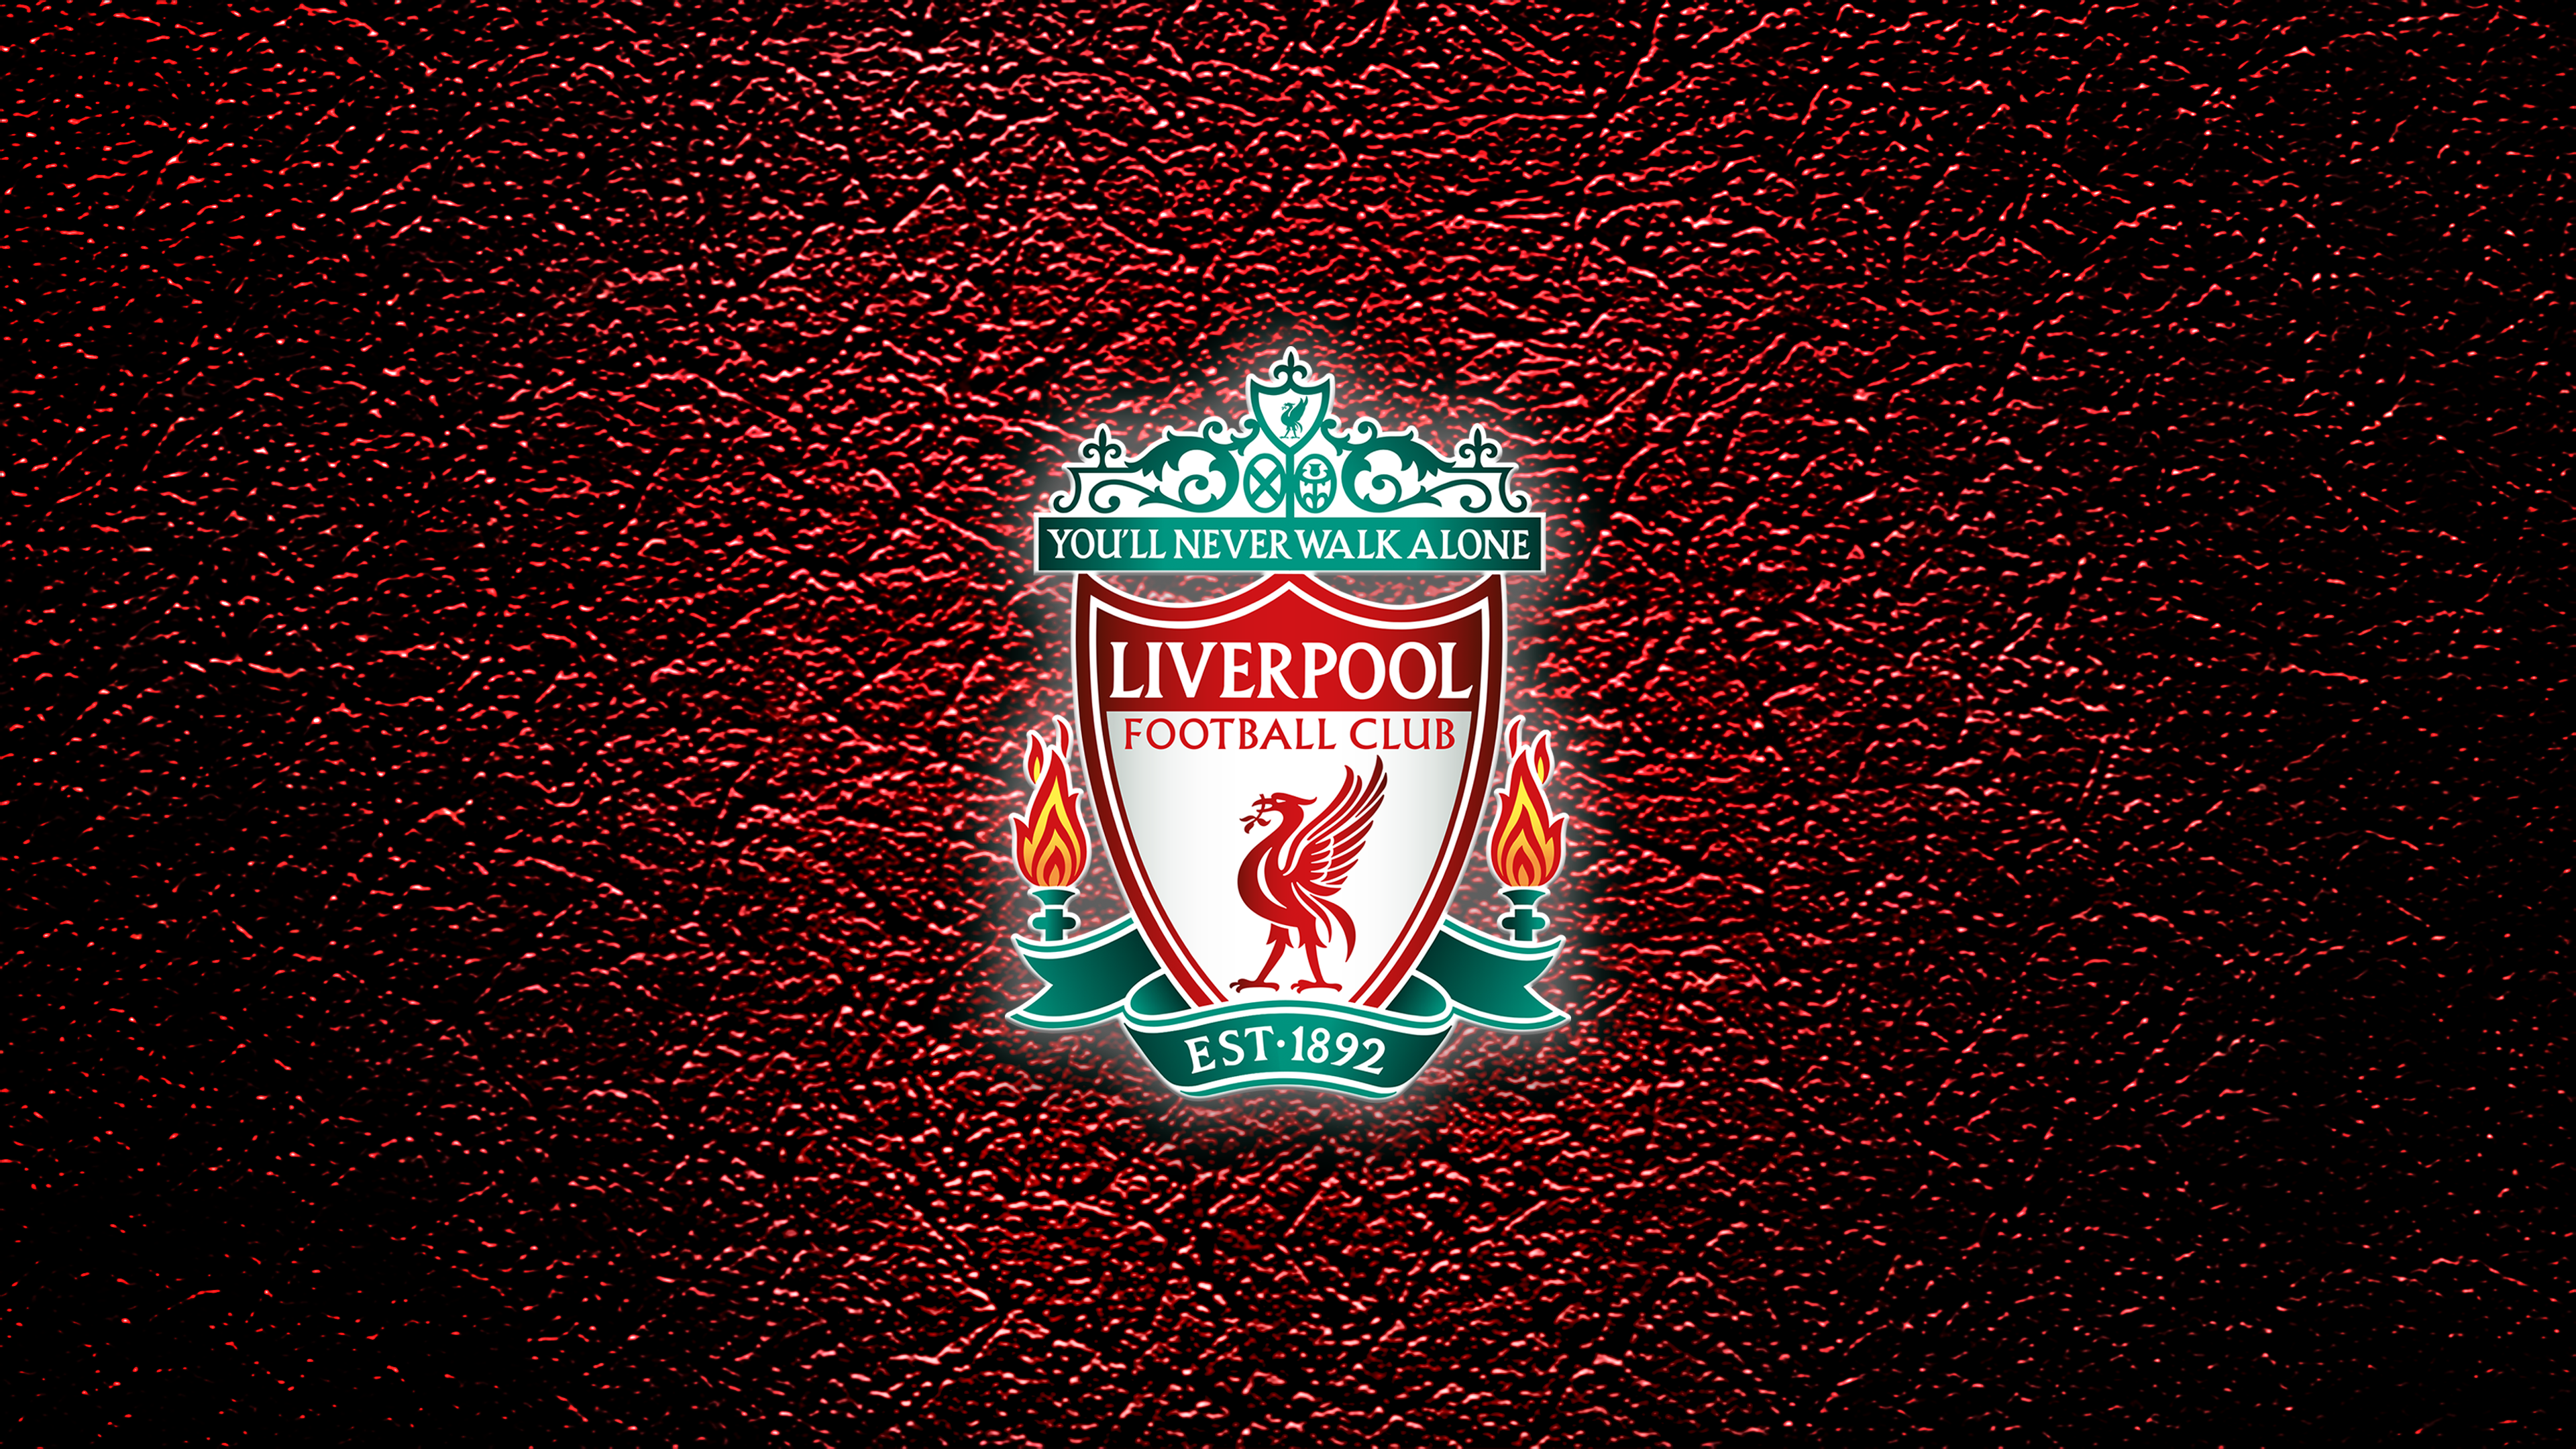 Wallpapers Liverpool Fc, The Reds, Football Club, Logo, - HD Wallpaper